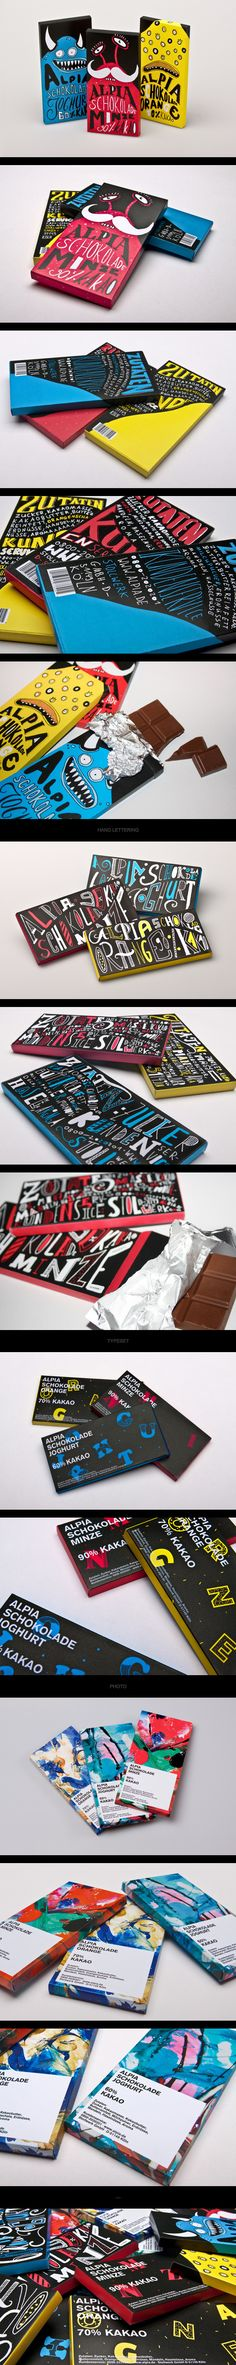 Alpia Chocolate by Tobias Saul. Who wouldn't like this cute chocolate packaging PD